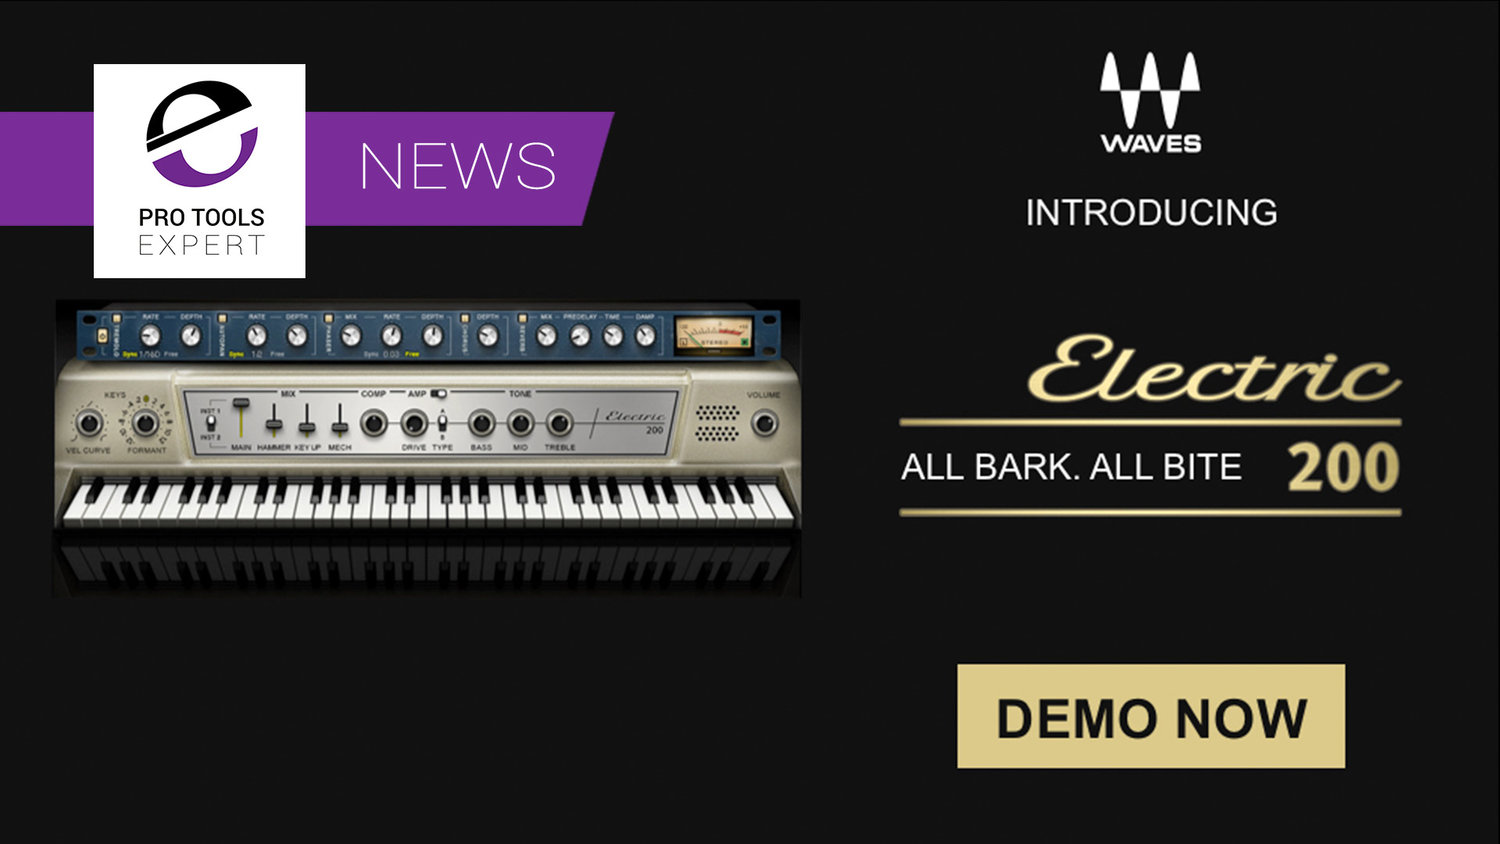 Waves Release New Keyboard Instrument - Electric 200 Piano